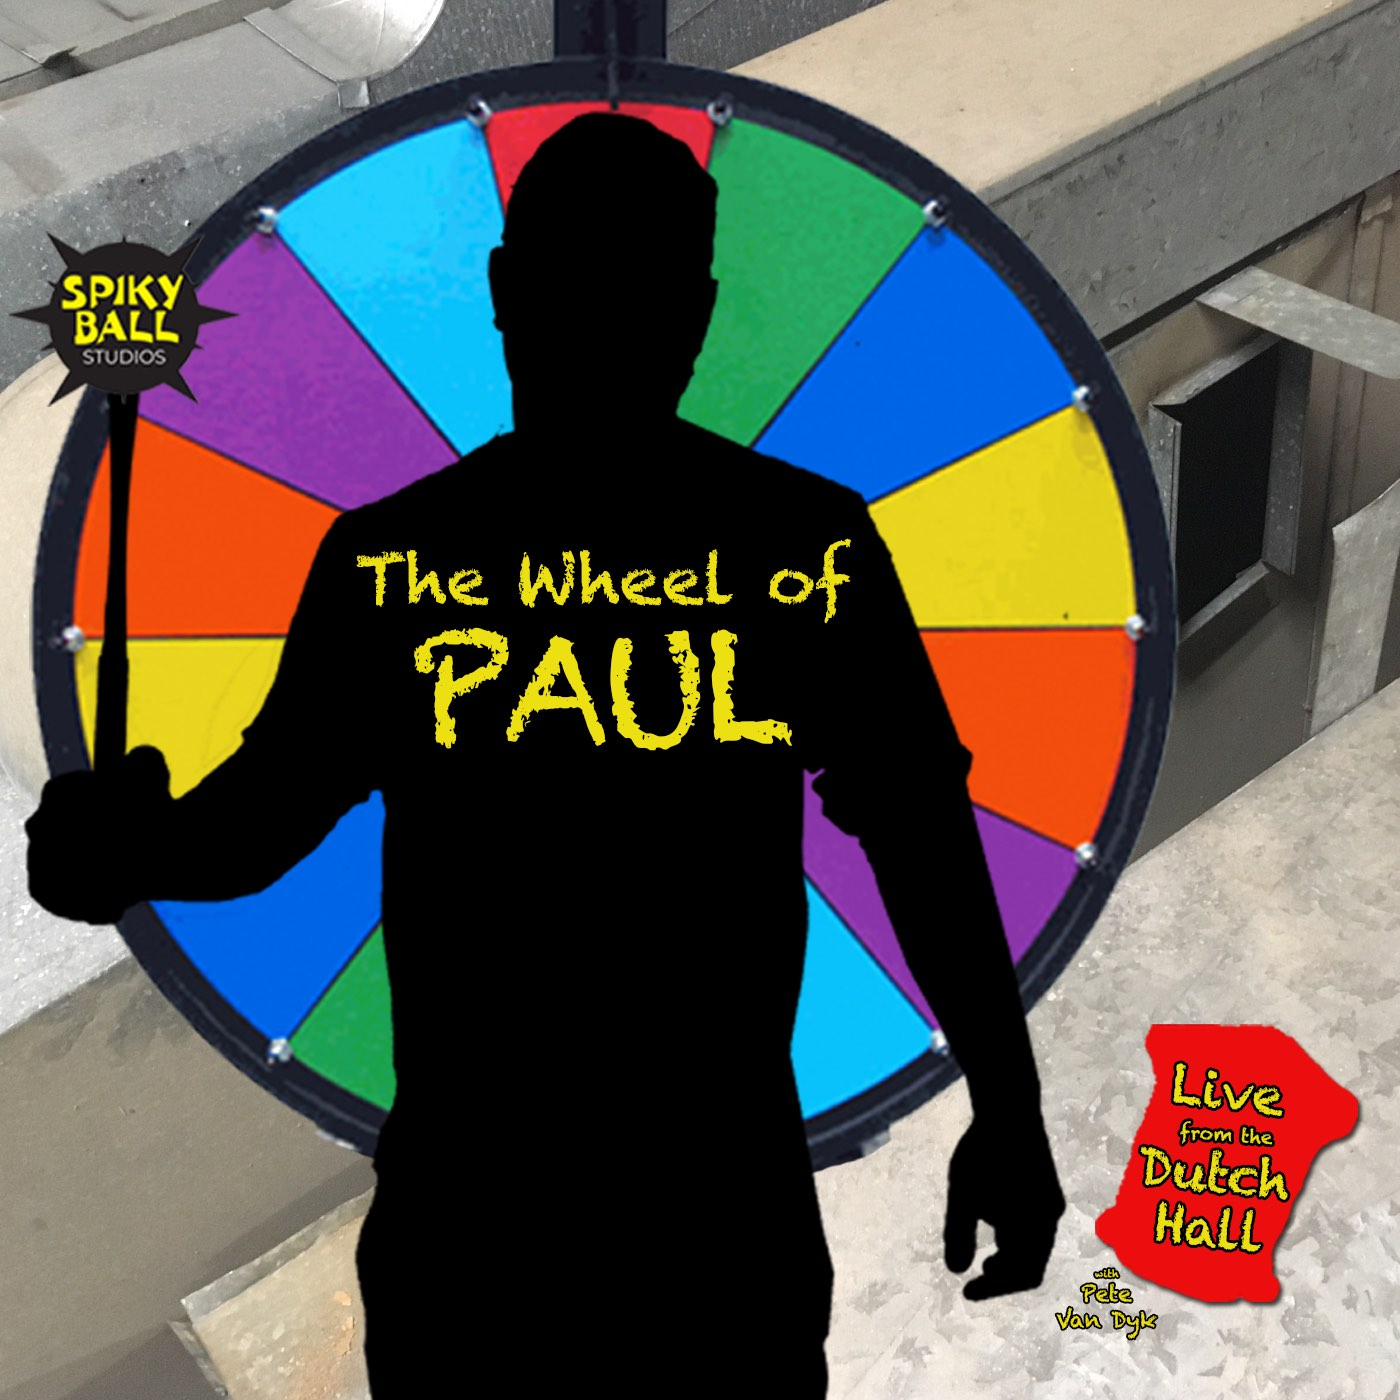 The Wheel of Paul